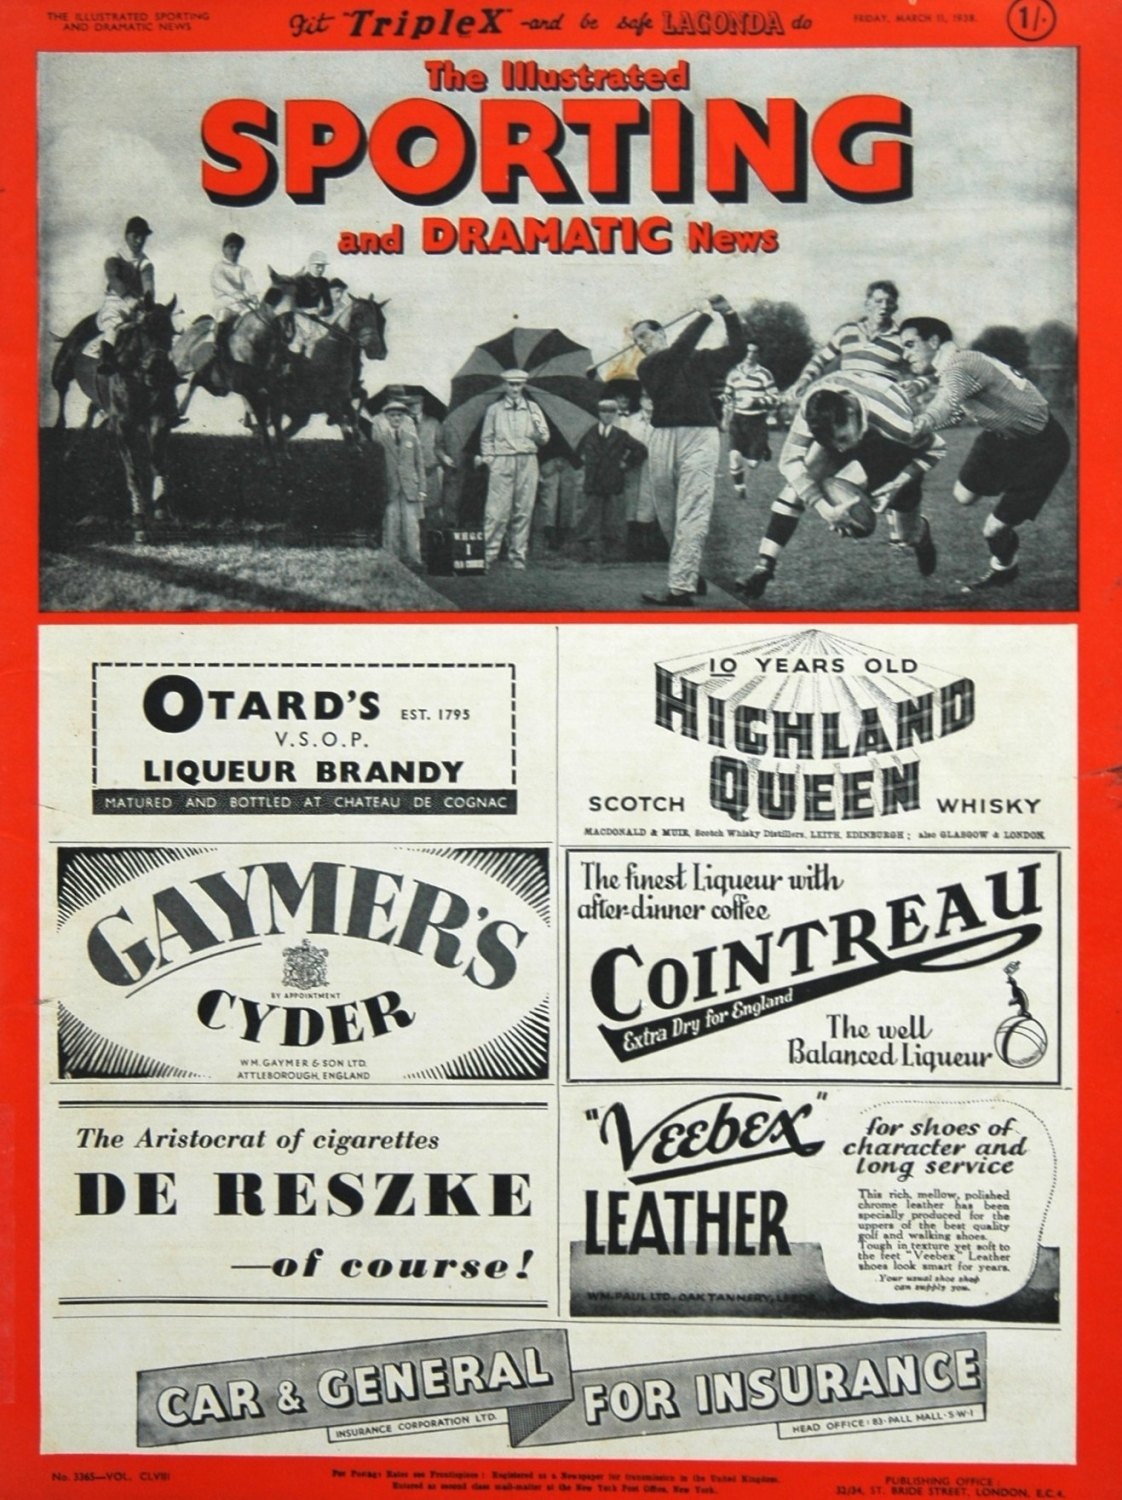 Illustrated Sporting and Dramatic News March 11th 1938.